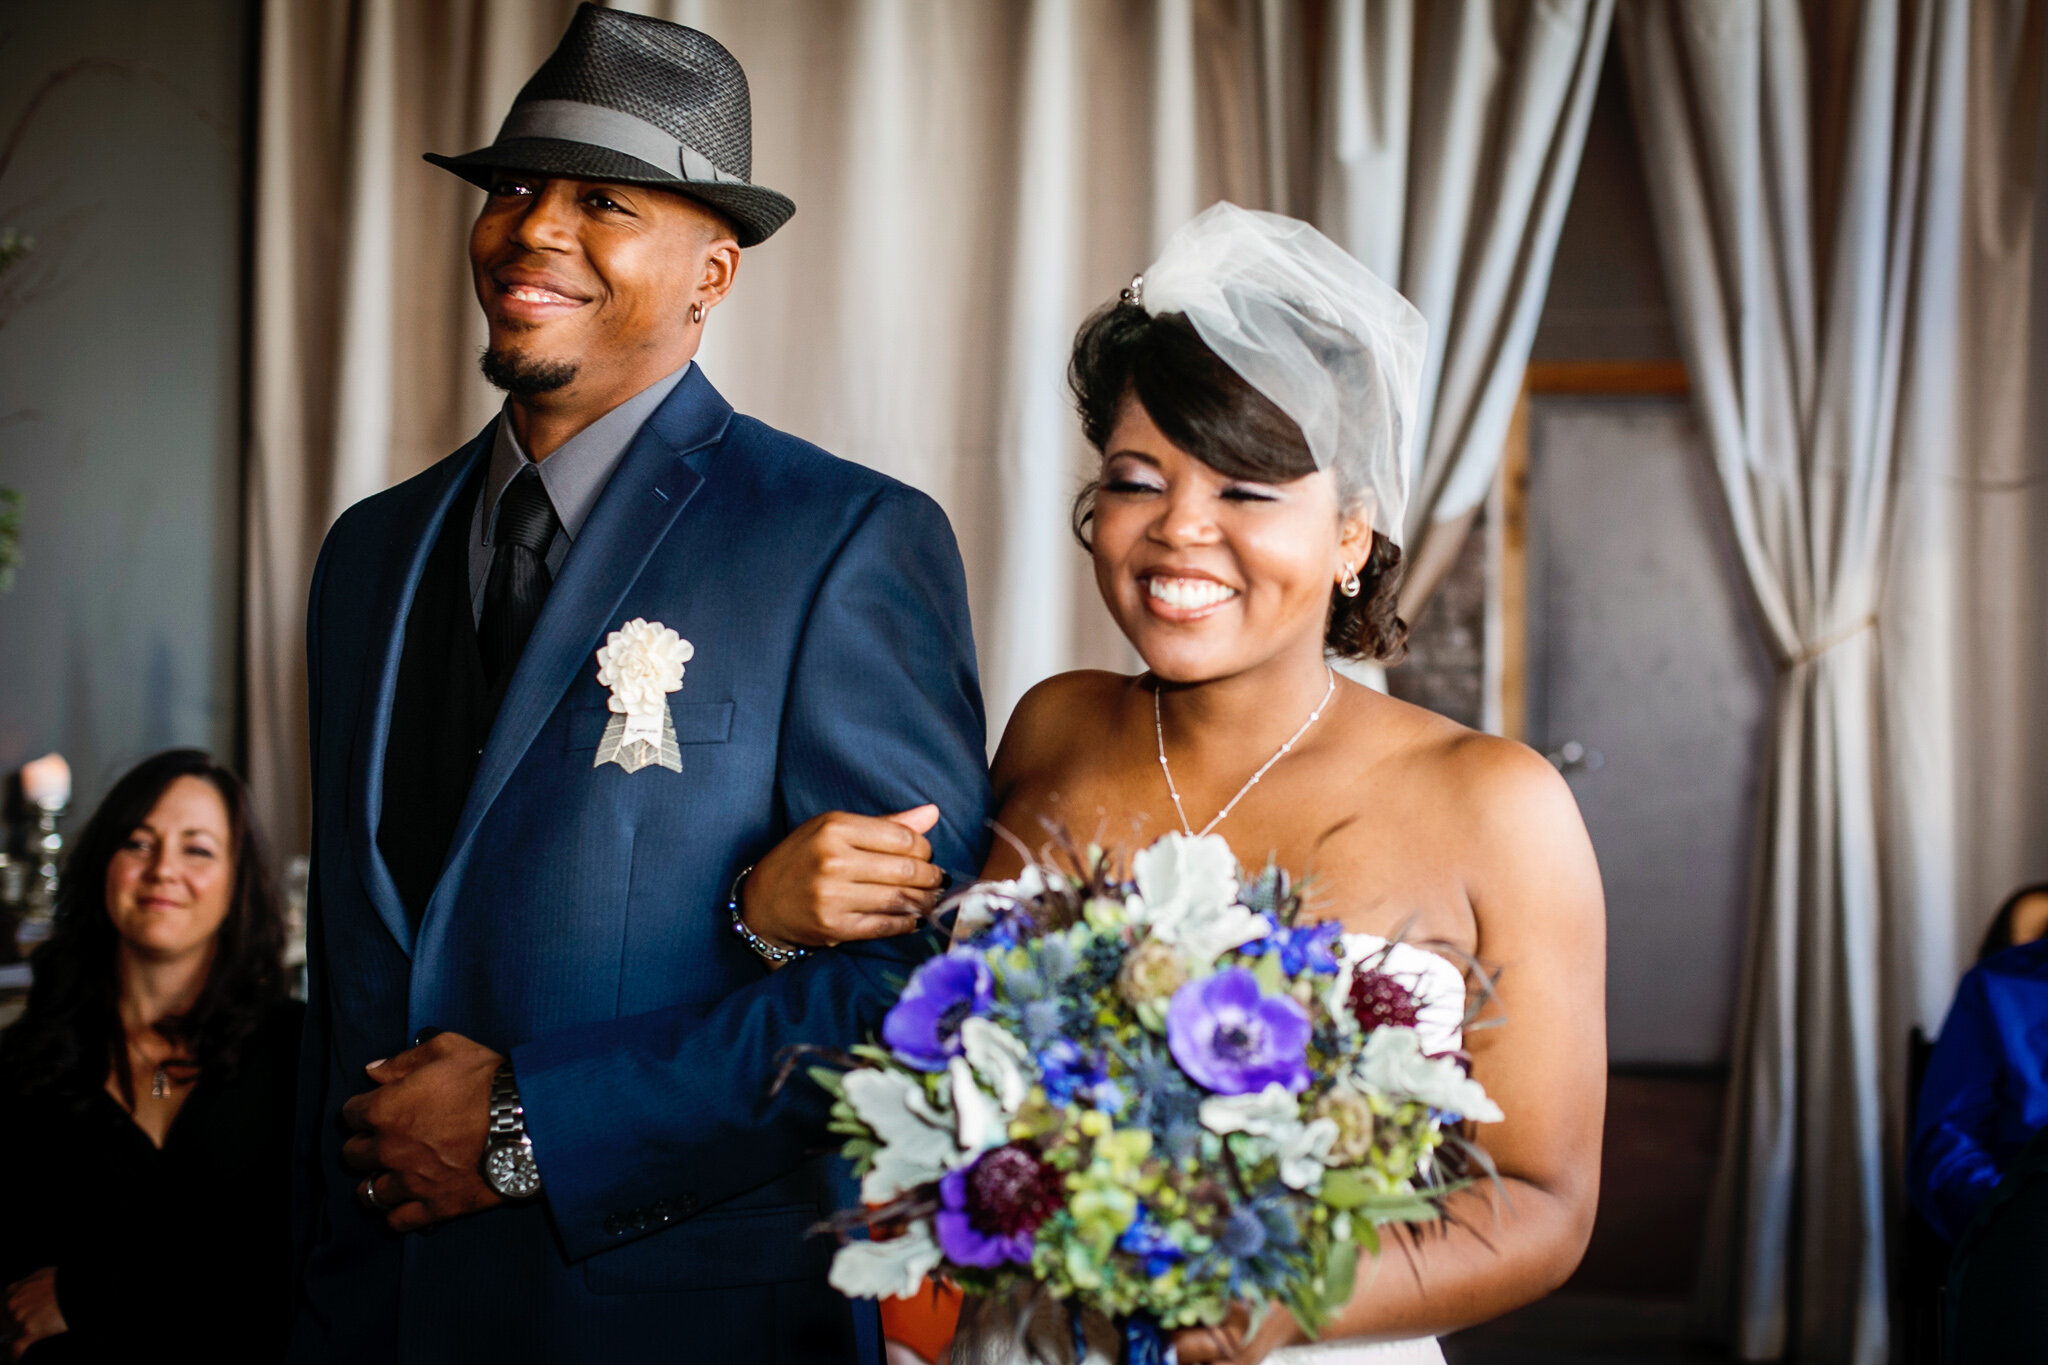 36 Wedding Songs For The Bride To Walk Down The Aisle To By Genre Country Rock Classical Indie Modern And More Kansas City Small Wedding Venues The Vow Exchange